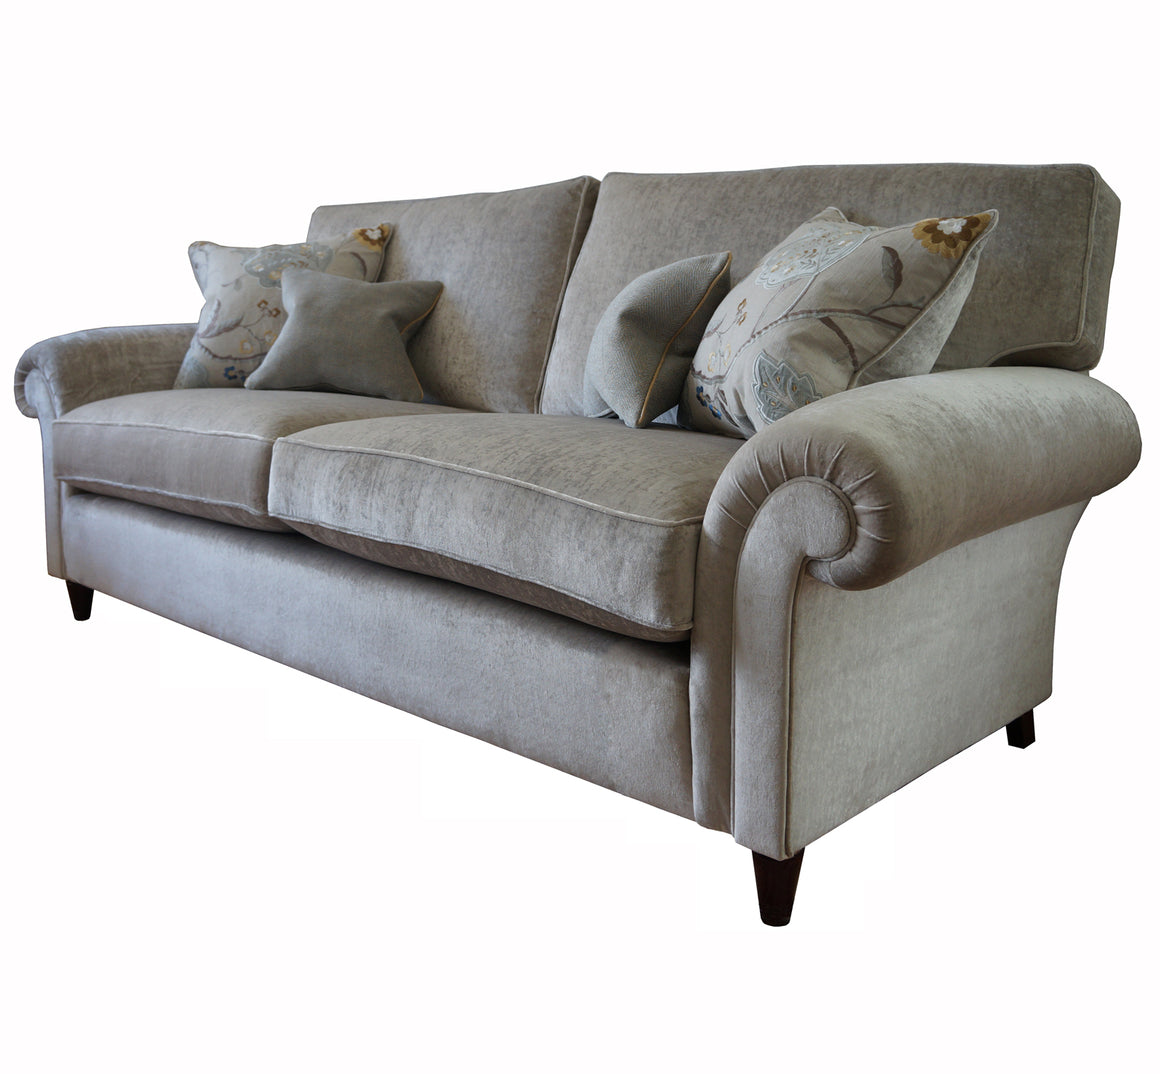 Walton Cushion Back Corner Sofa